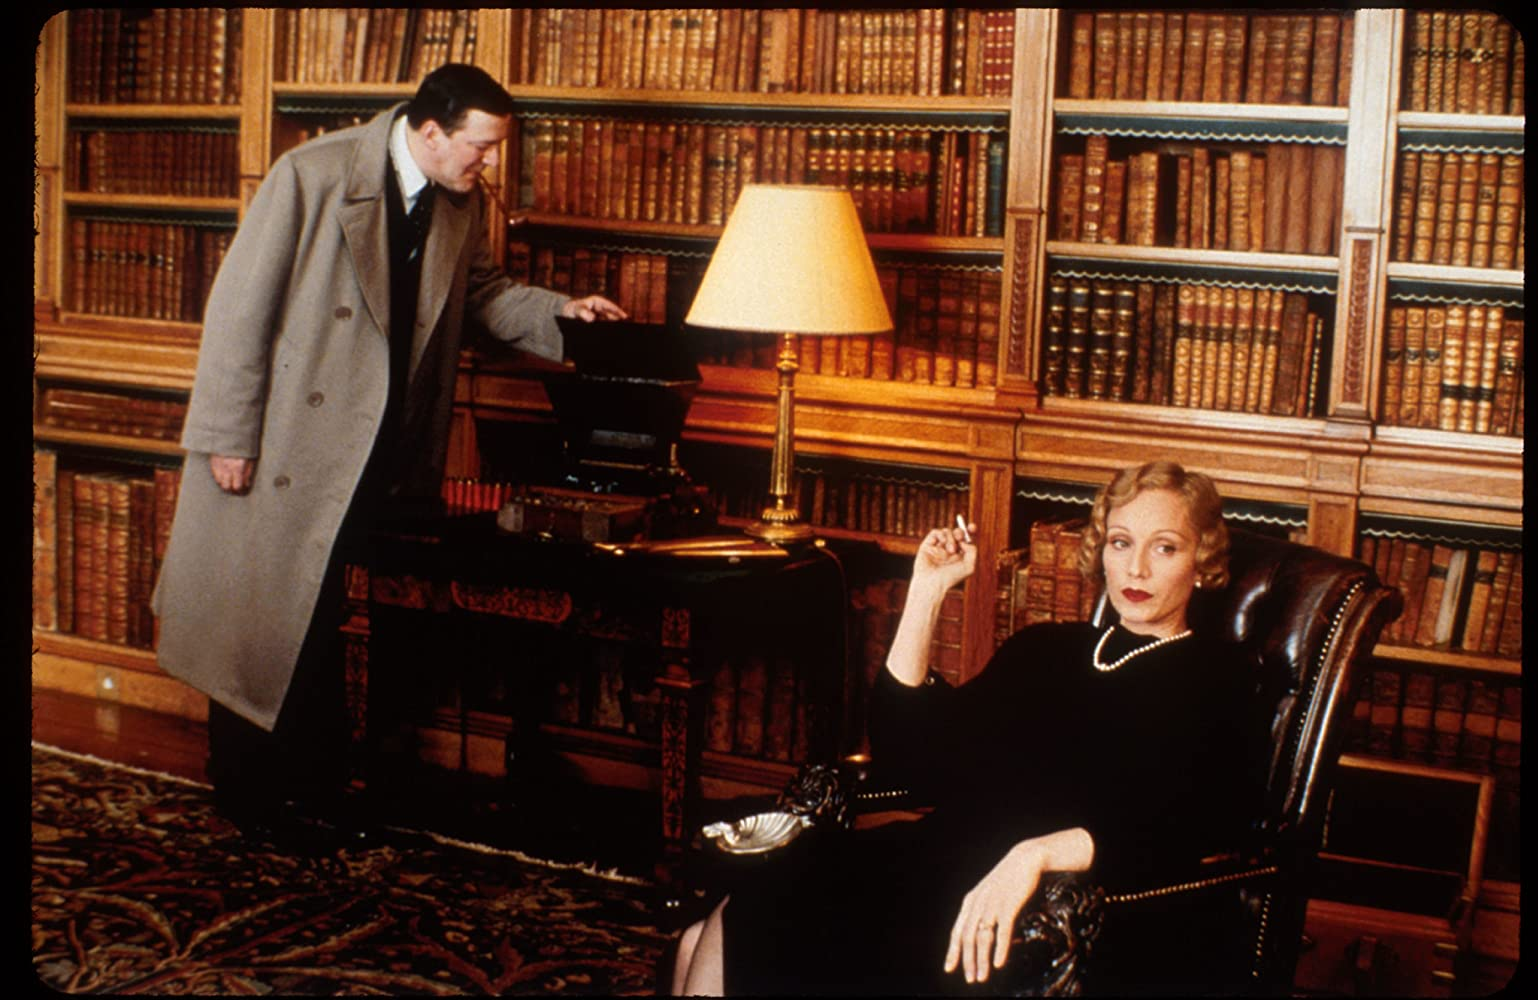 Kristin Scott Thomas and Stephen Fry in Gosford Park (2001)